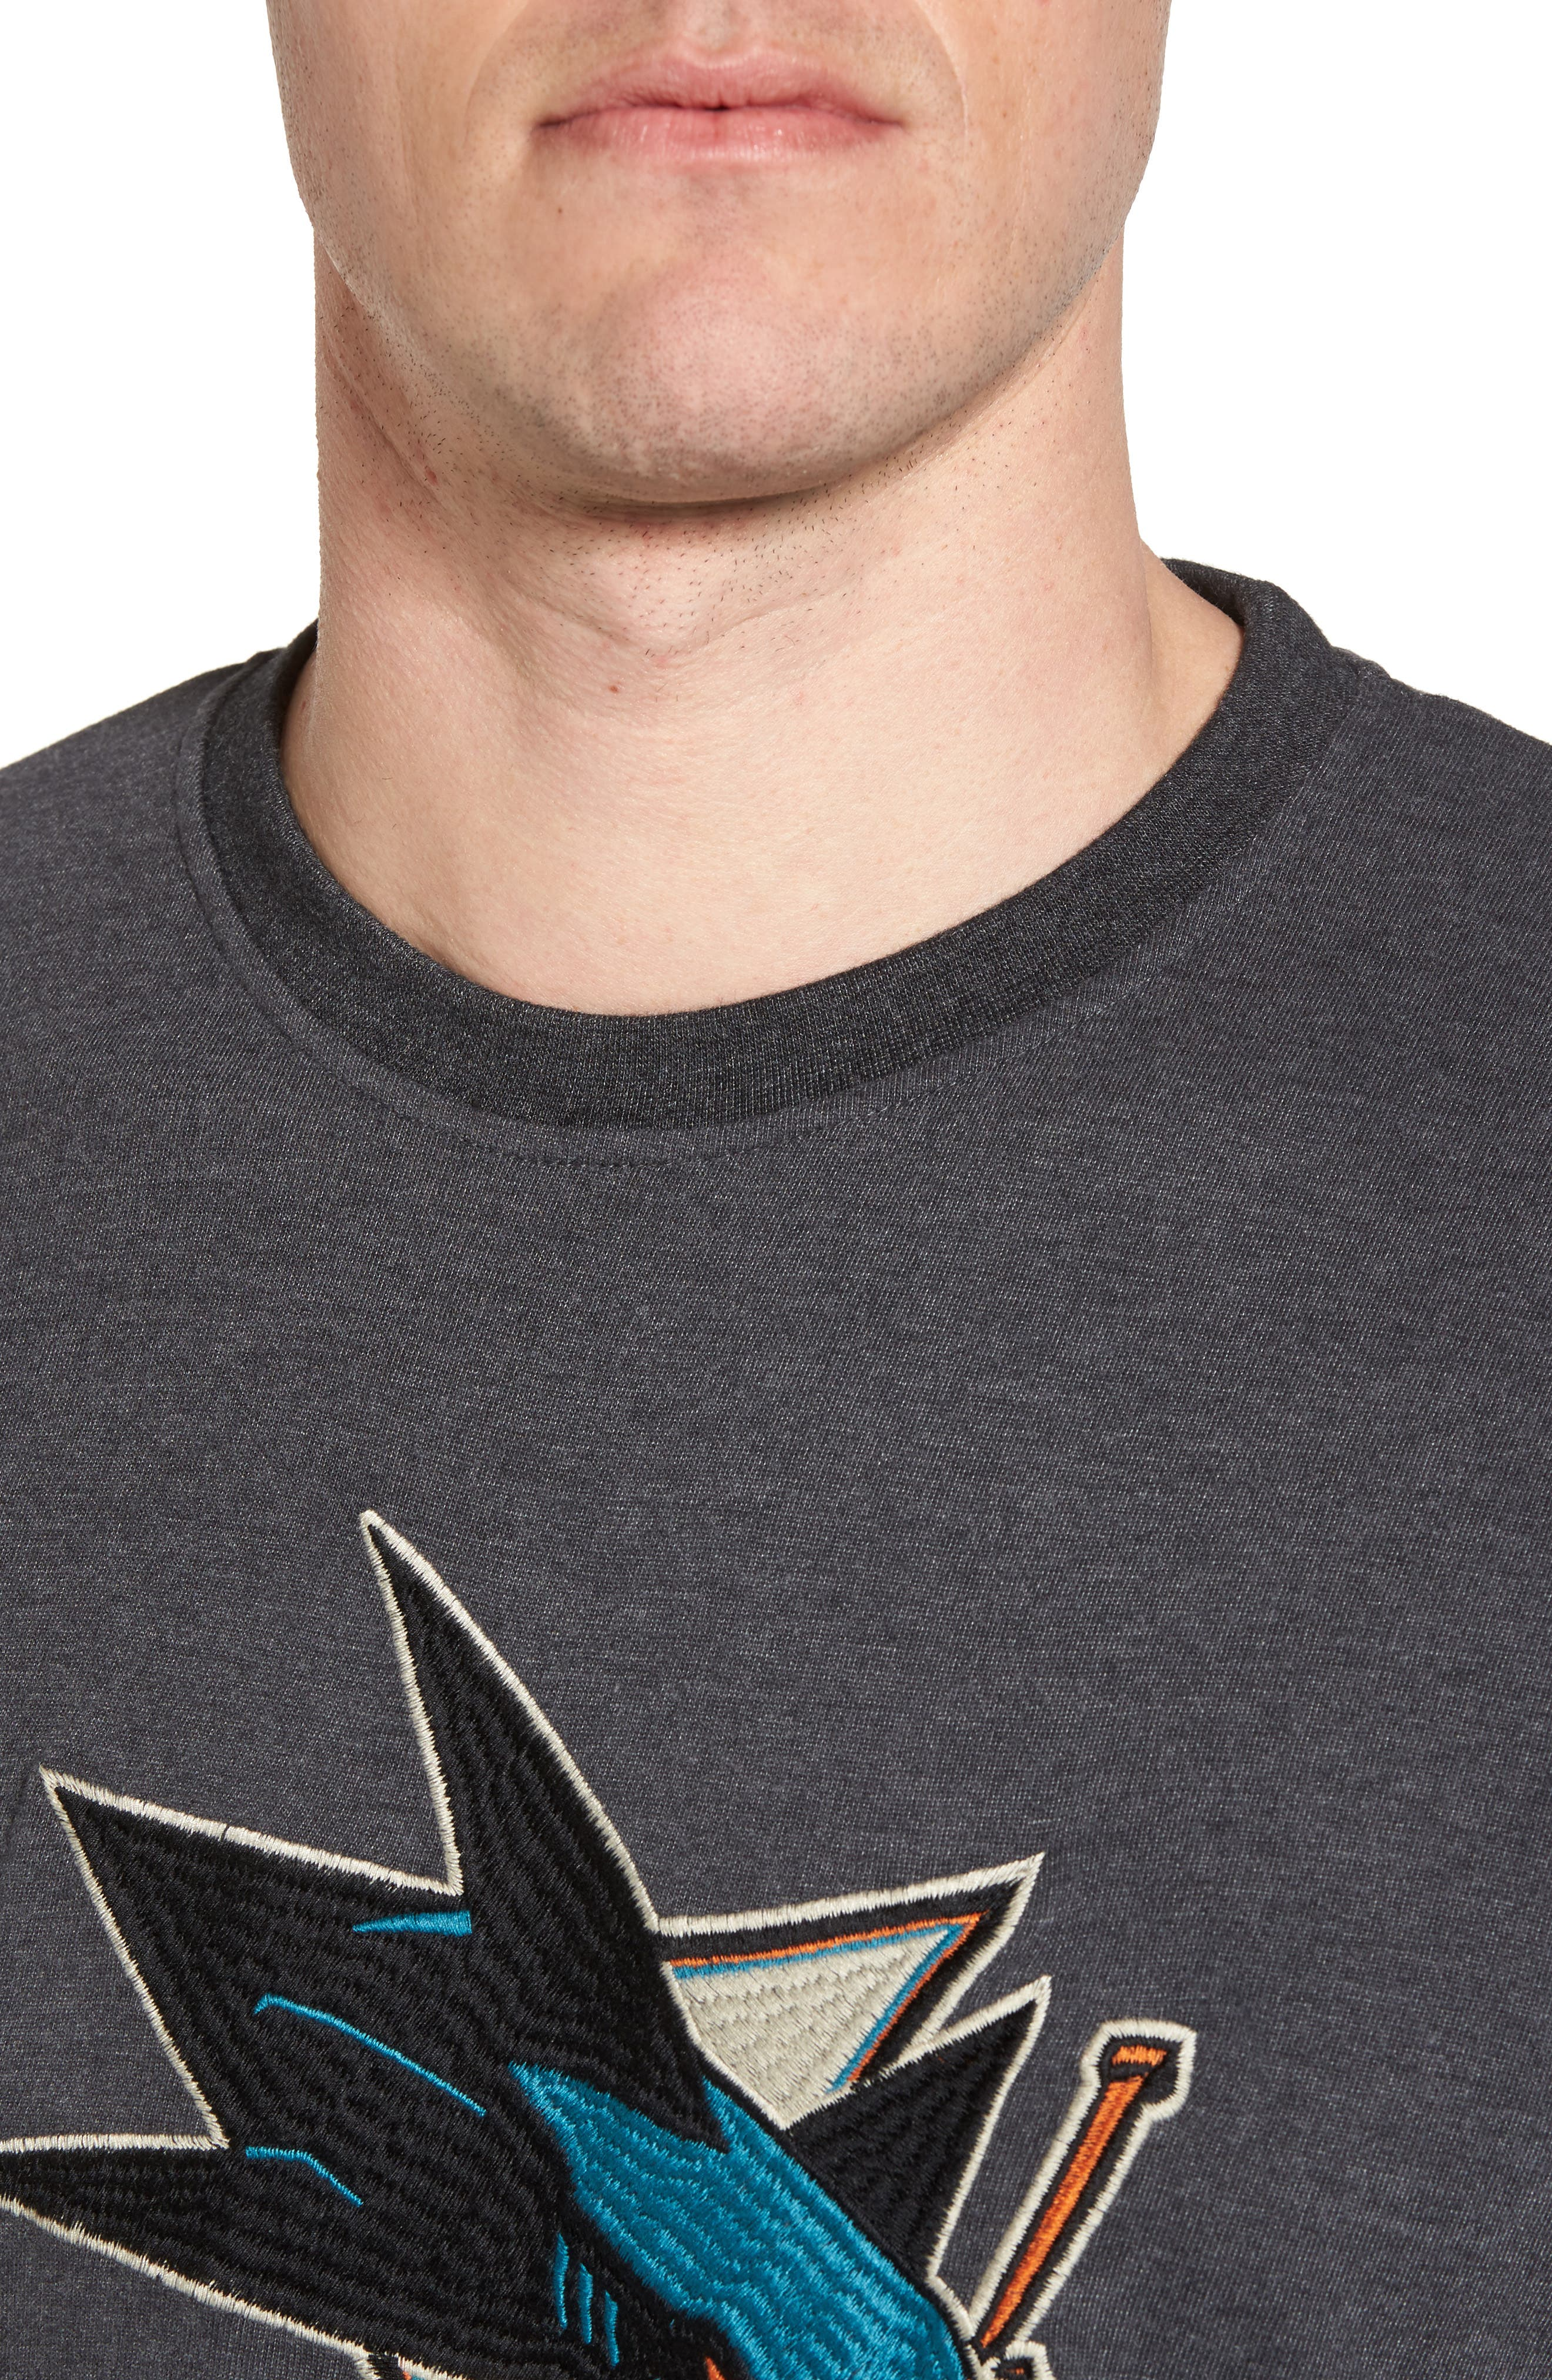 Hillwood San José Sharks Embroidered T-Shirt,                             Alternate thumbnail 4, color,